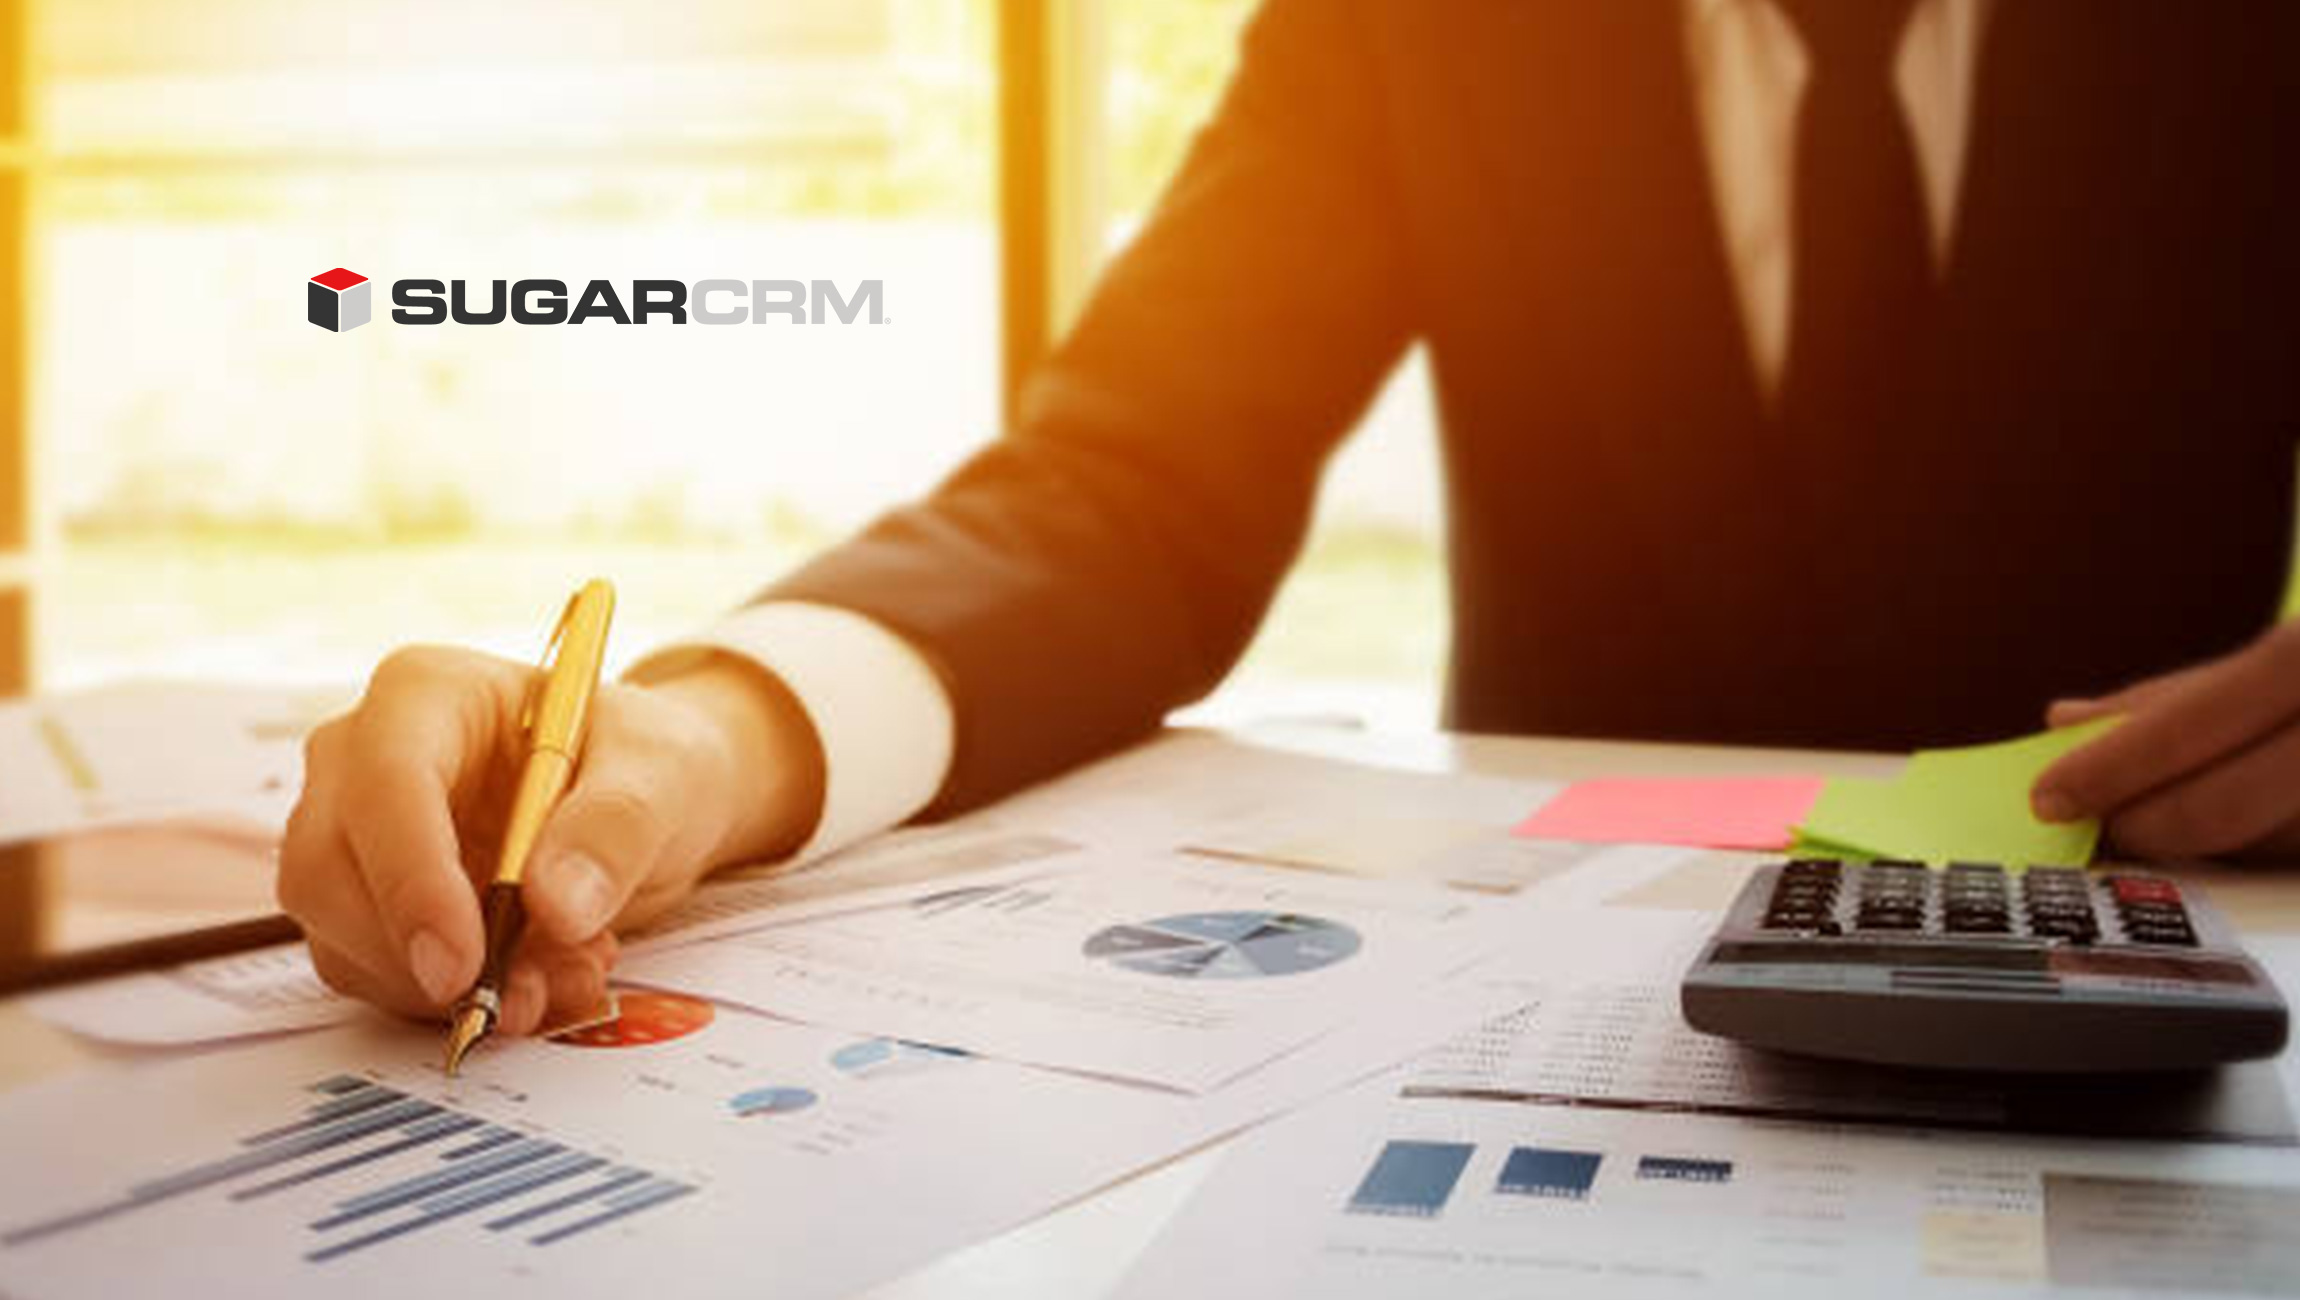 Salesfusion Marketing Automation Platform from SugarCRM Integrates with Google Ads to Meet Mid-Market Demand